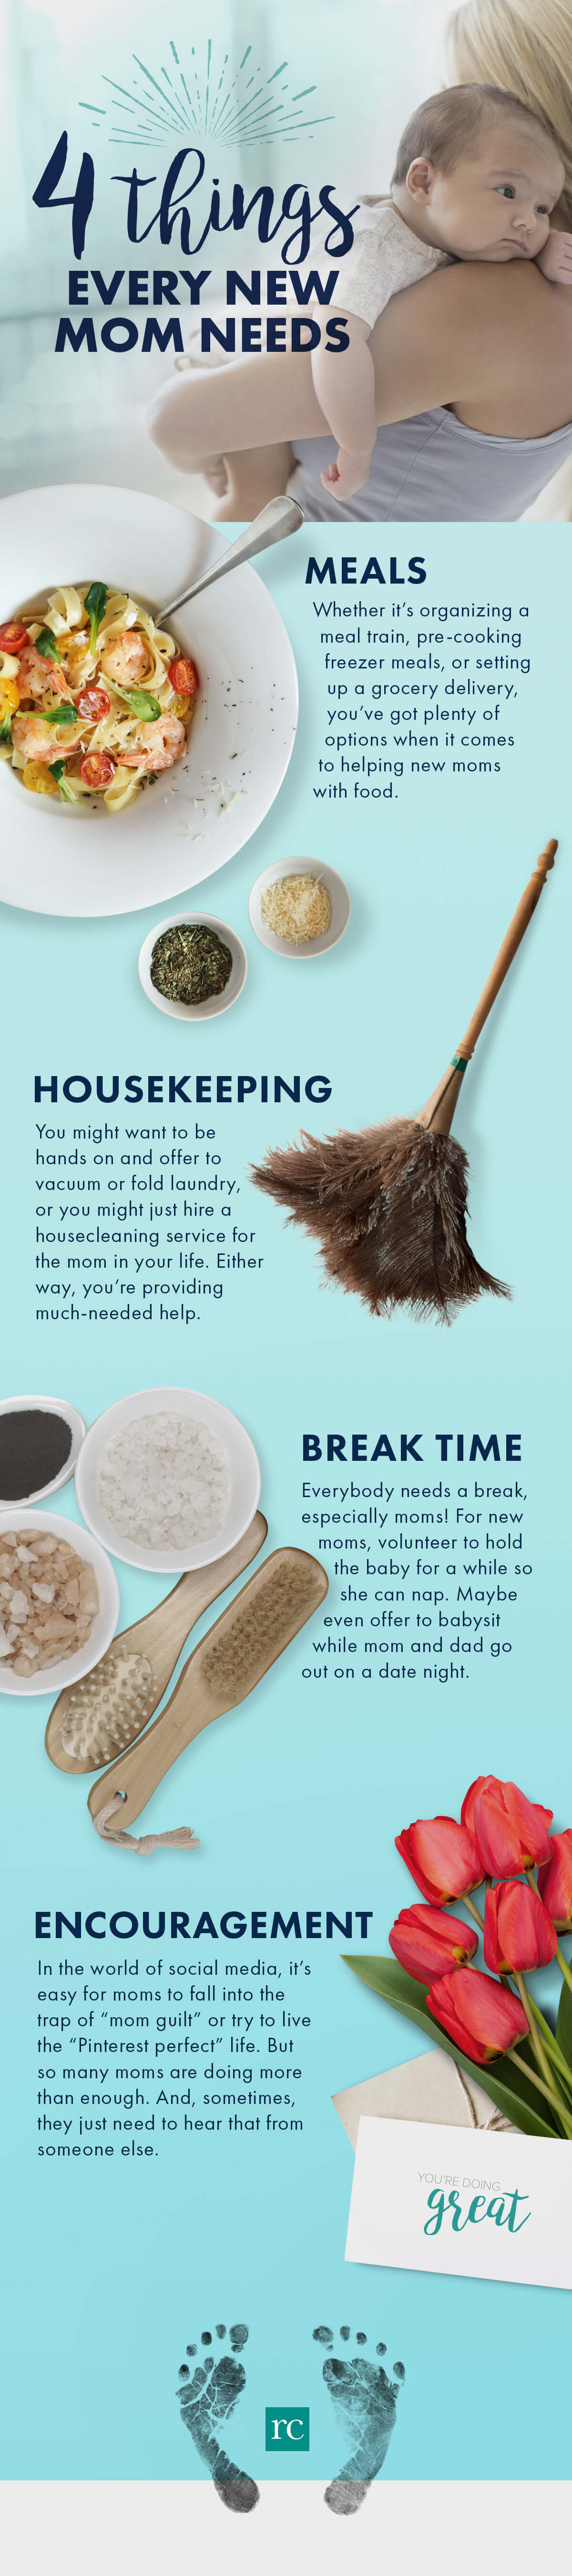 4 things every new mom needs infographic